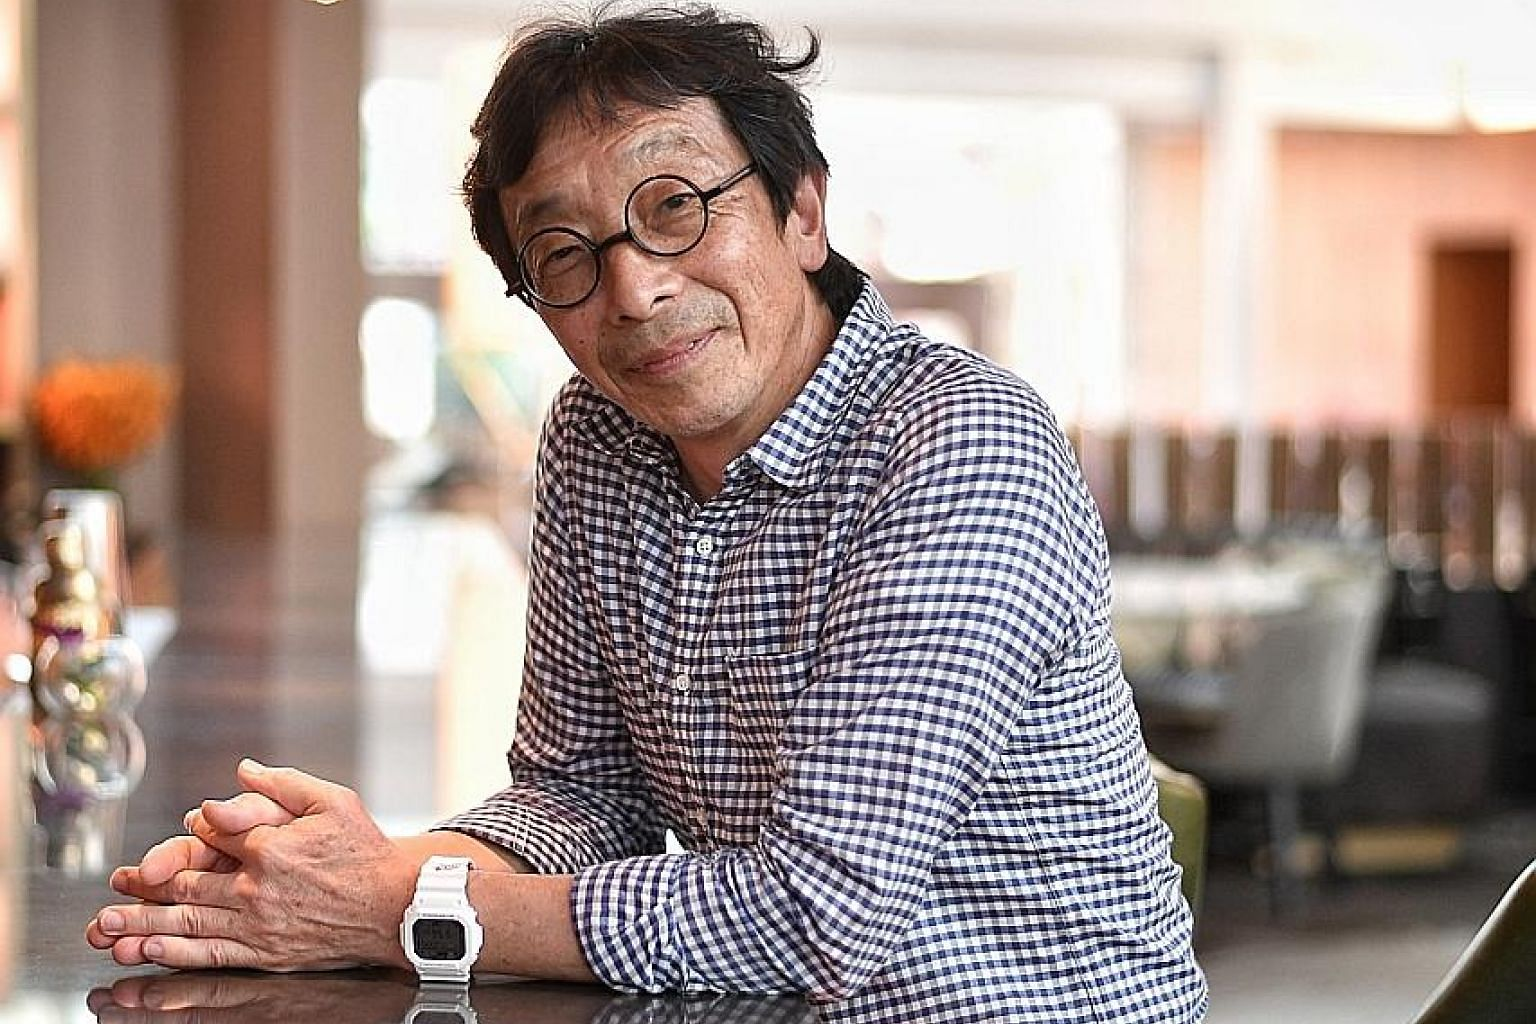 Mr Ibe joined Casio after graduation in the late 1970s after the electronics giant hired him as a production engineer. Mr Kikuo Ibe, 66, spent over two years and tested hundreds of prototypes before the first G-Shock model, DW-5000, was released in 1